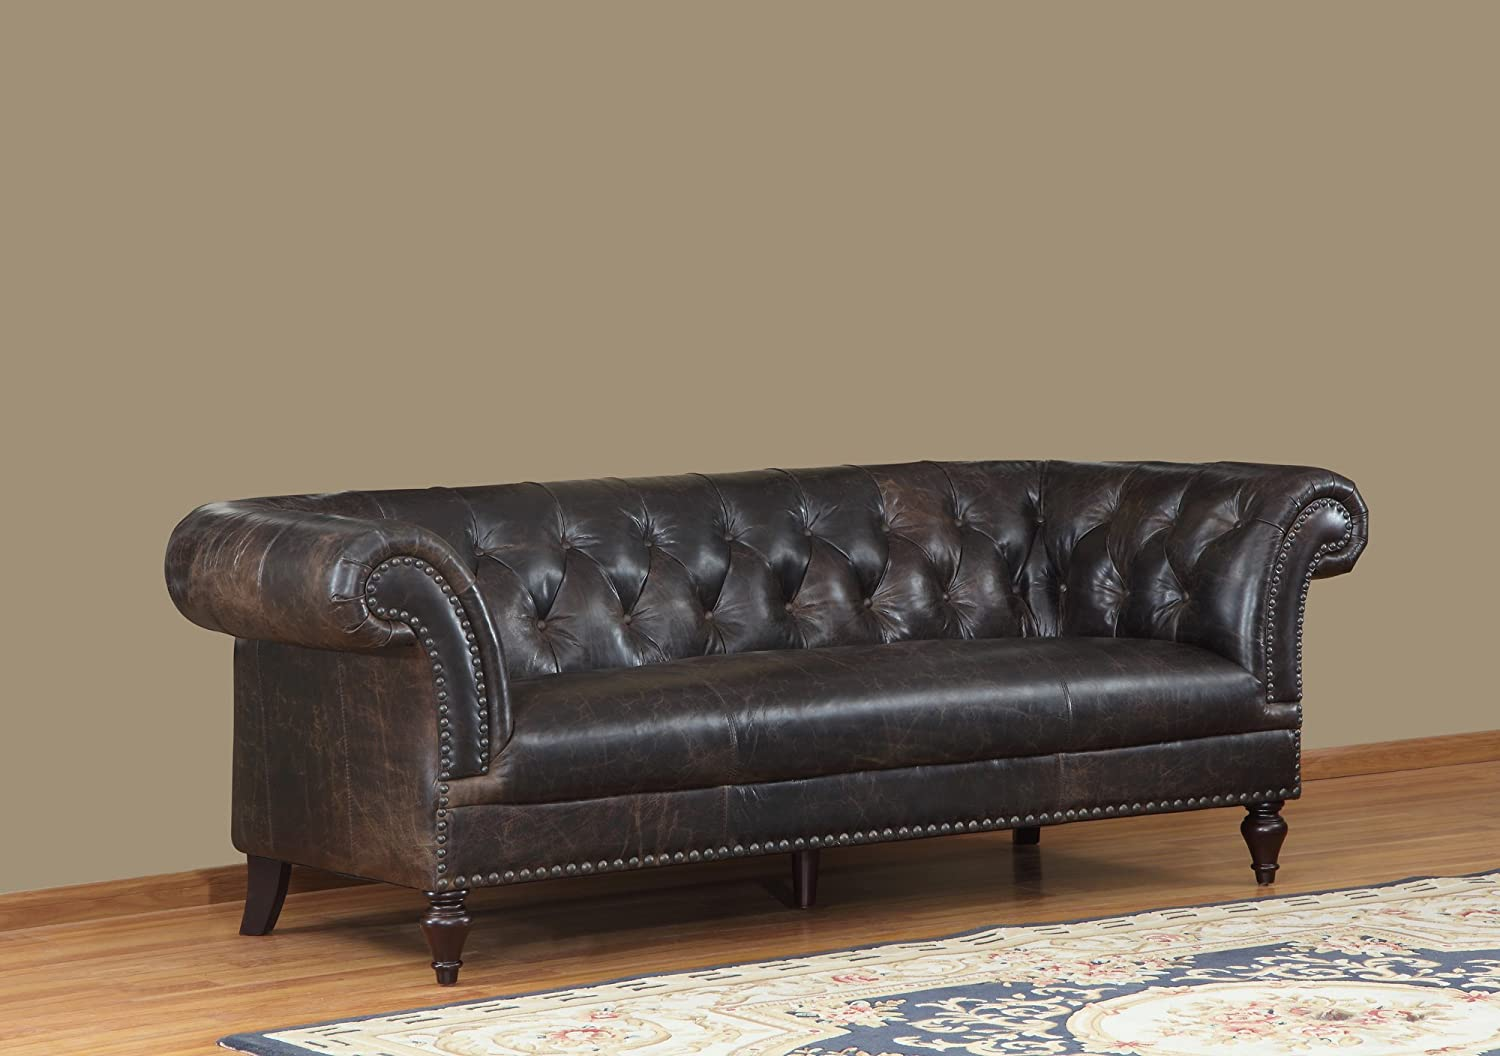 Lazzaro Jaffna Sofa - 91 by 39 by 32-Inch - Brompton/Chocolate